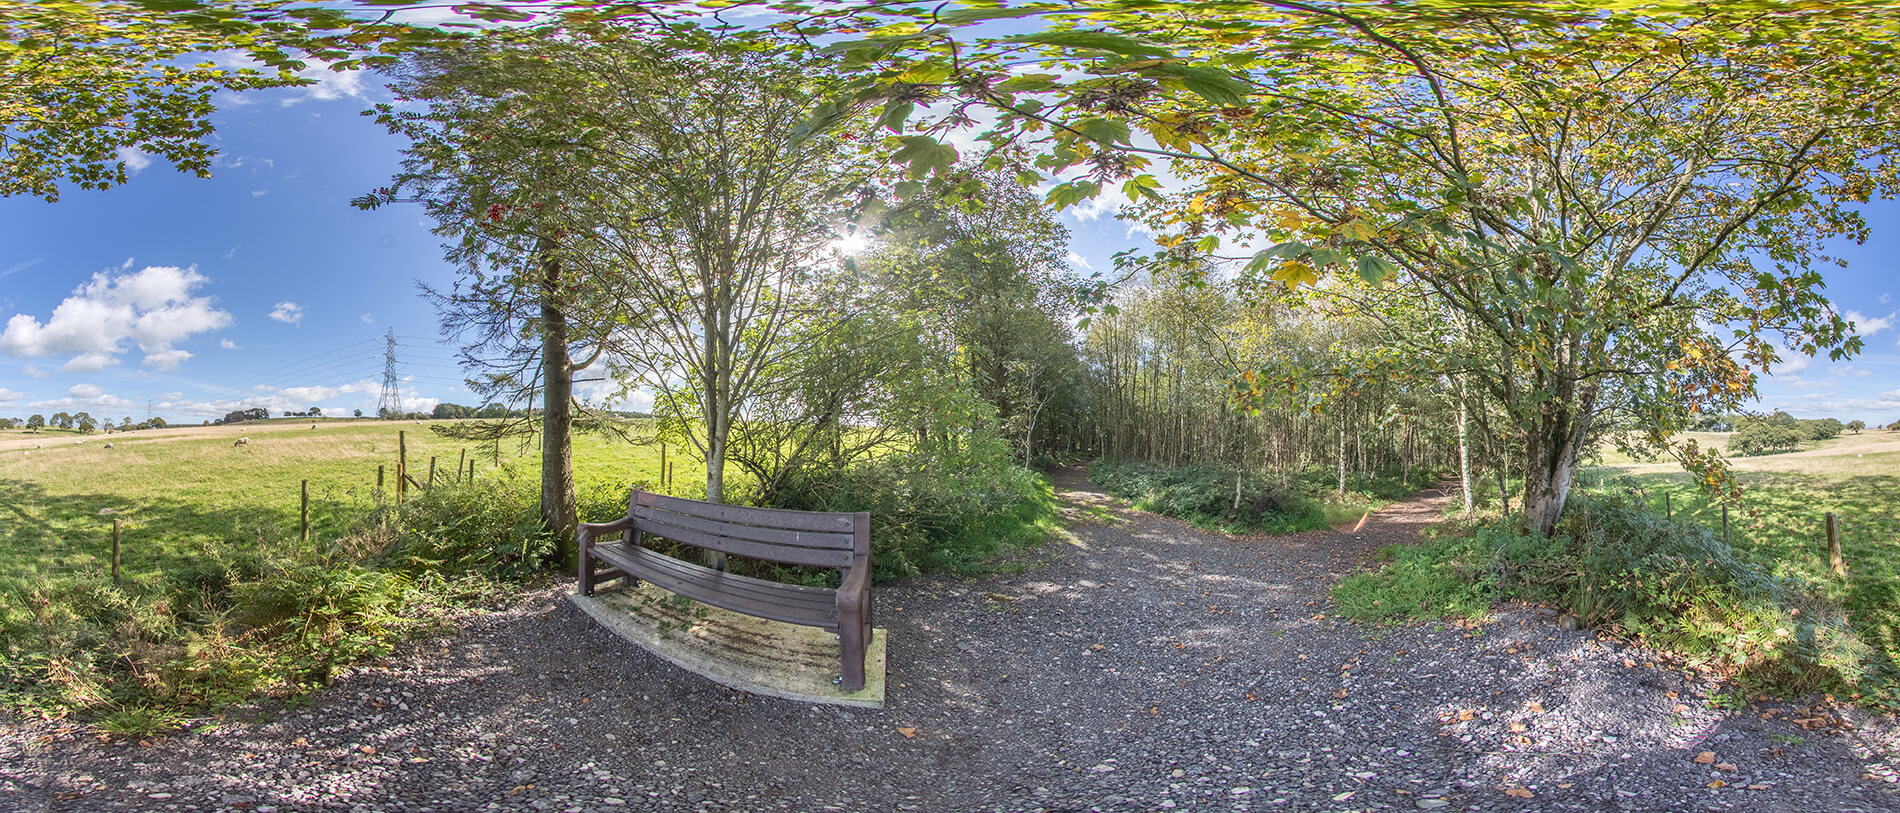 OLD_HALL_BENCH_PANO1[1]